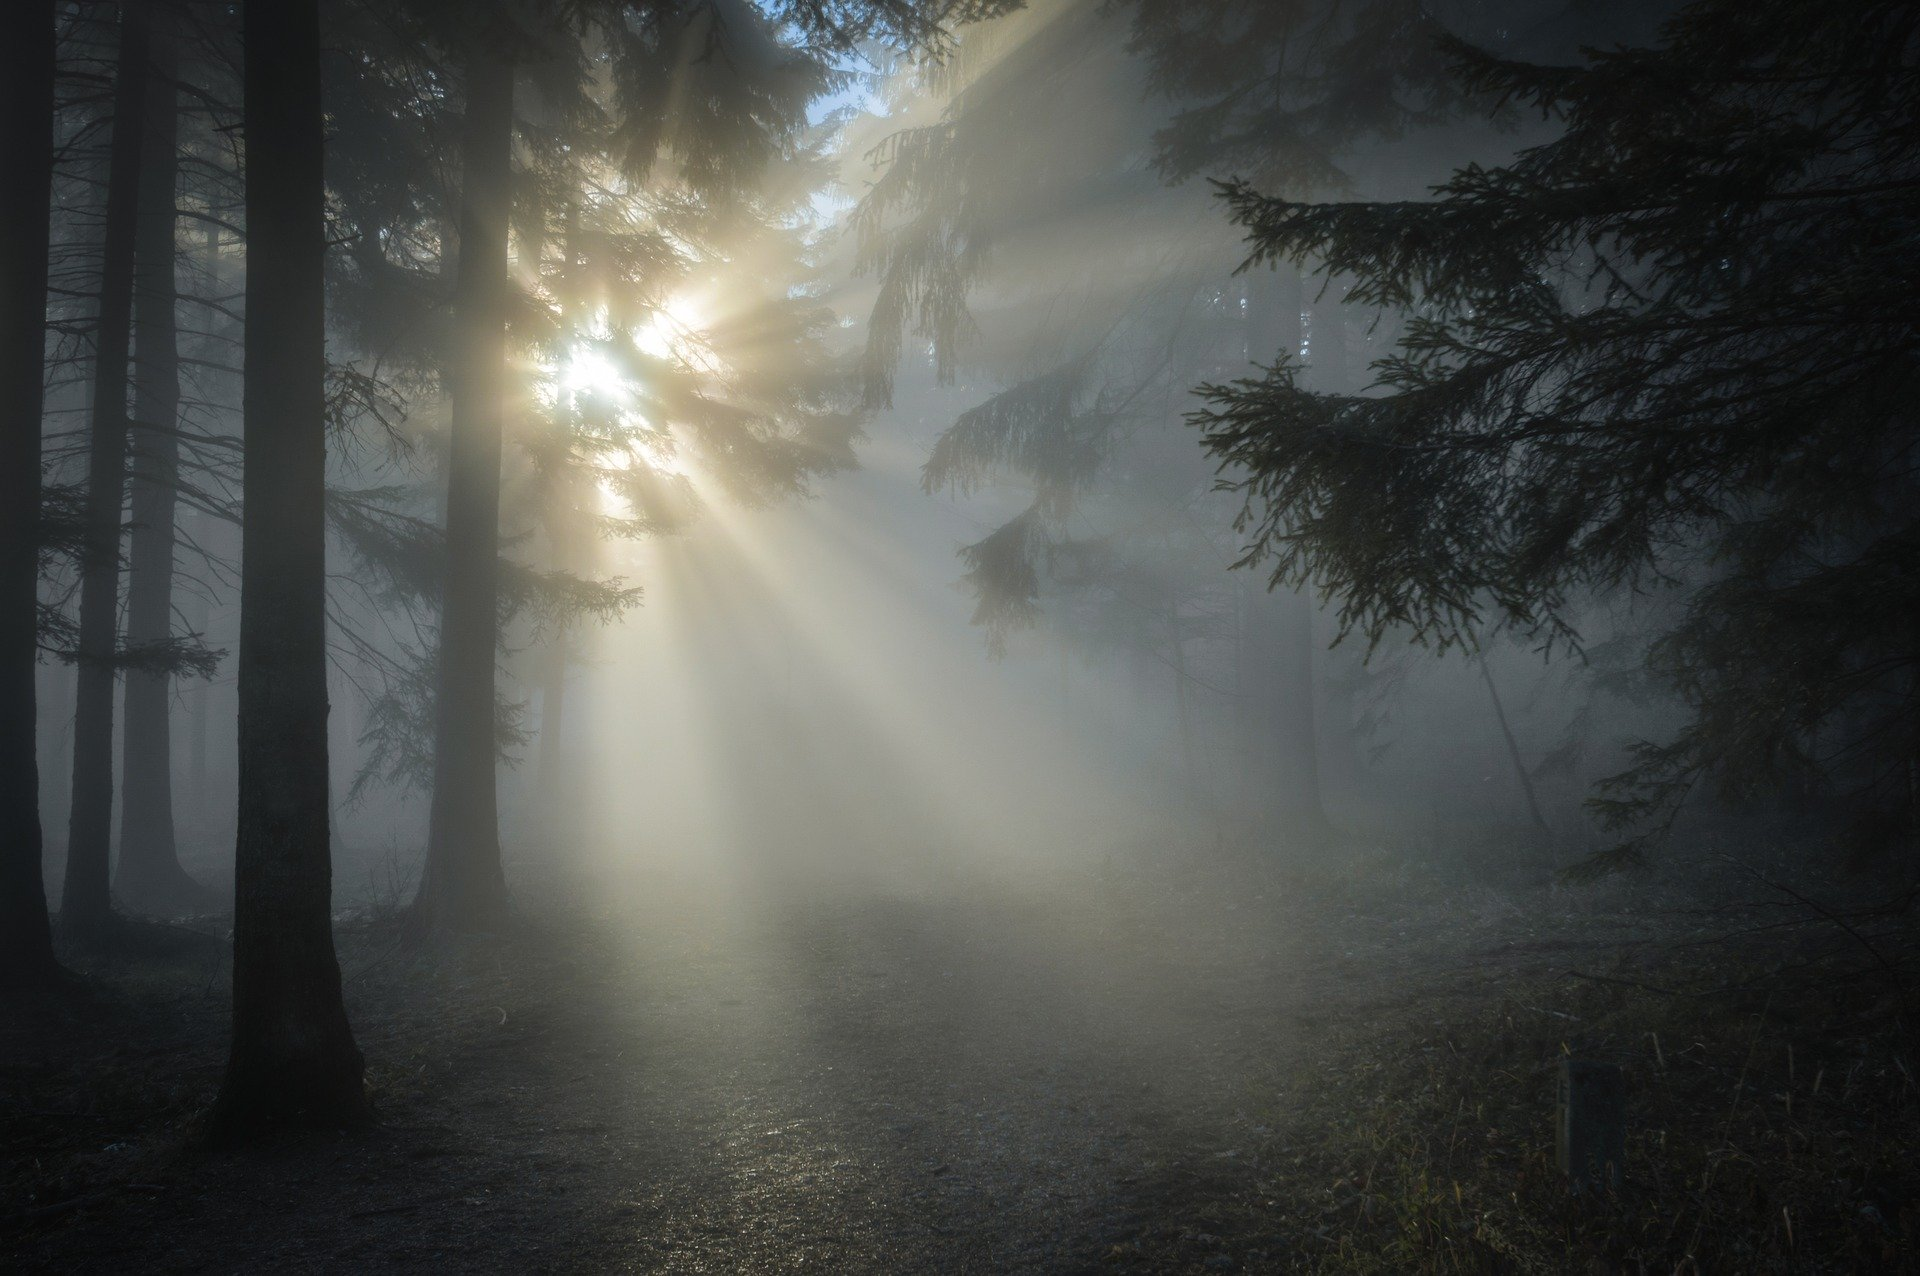 Accepting life's challenges depicted by light thru trees